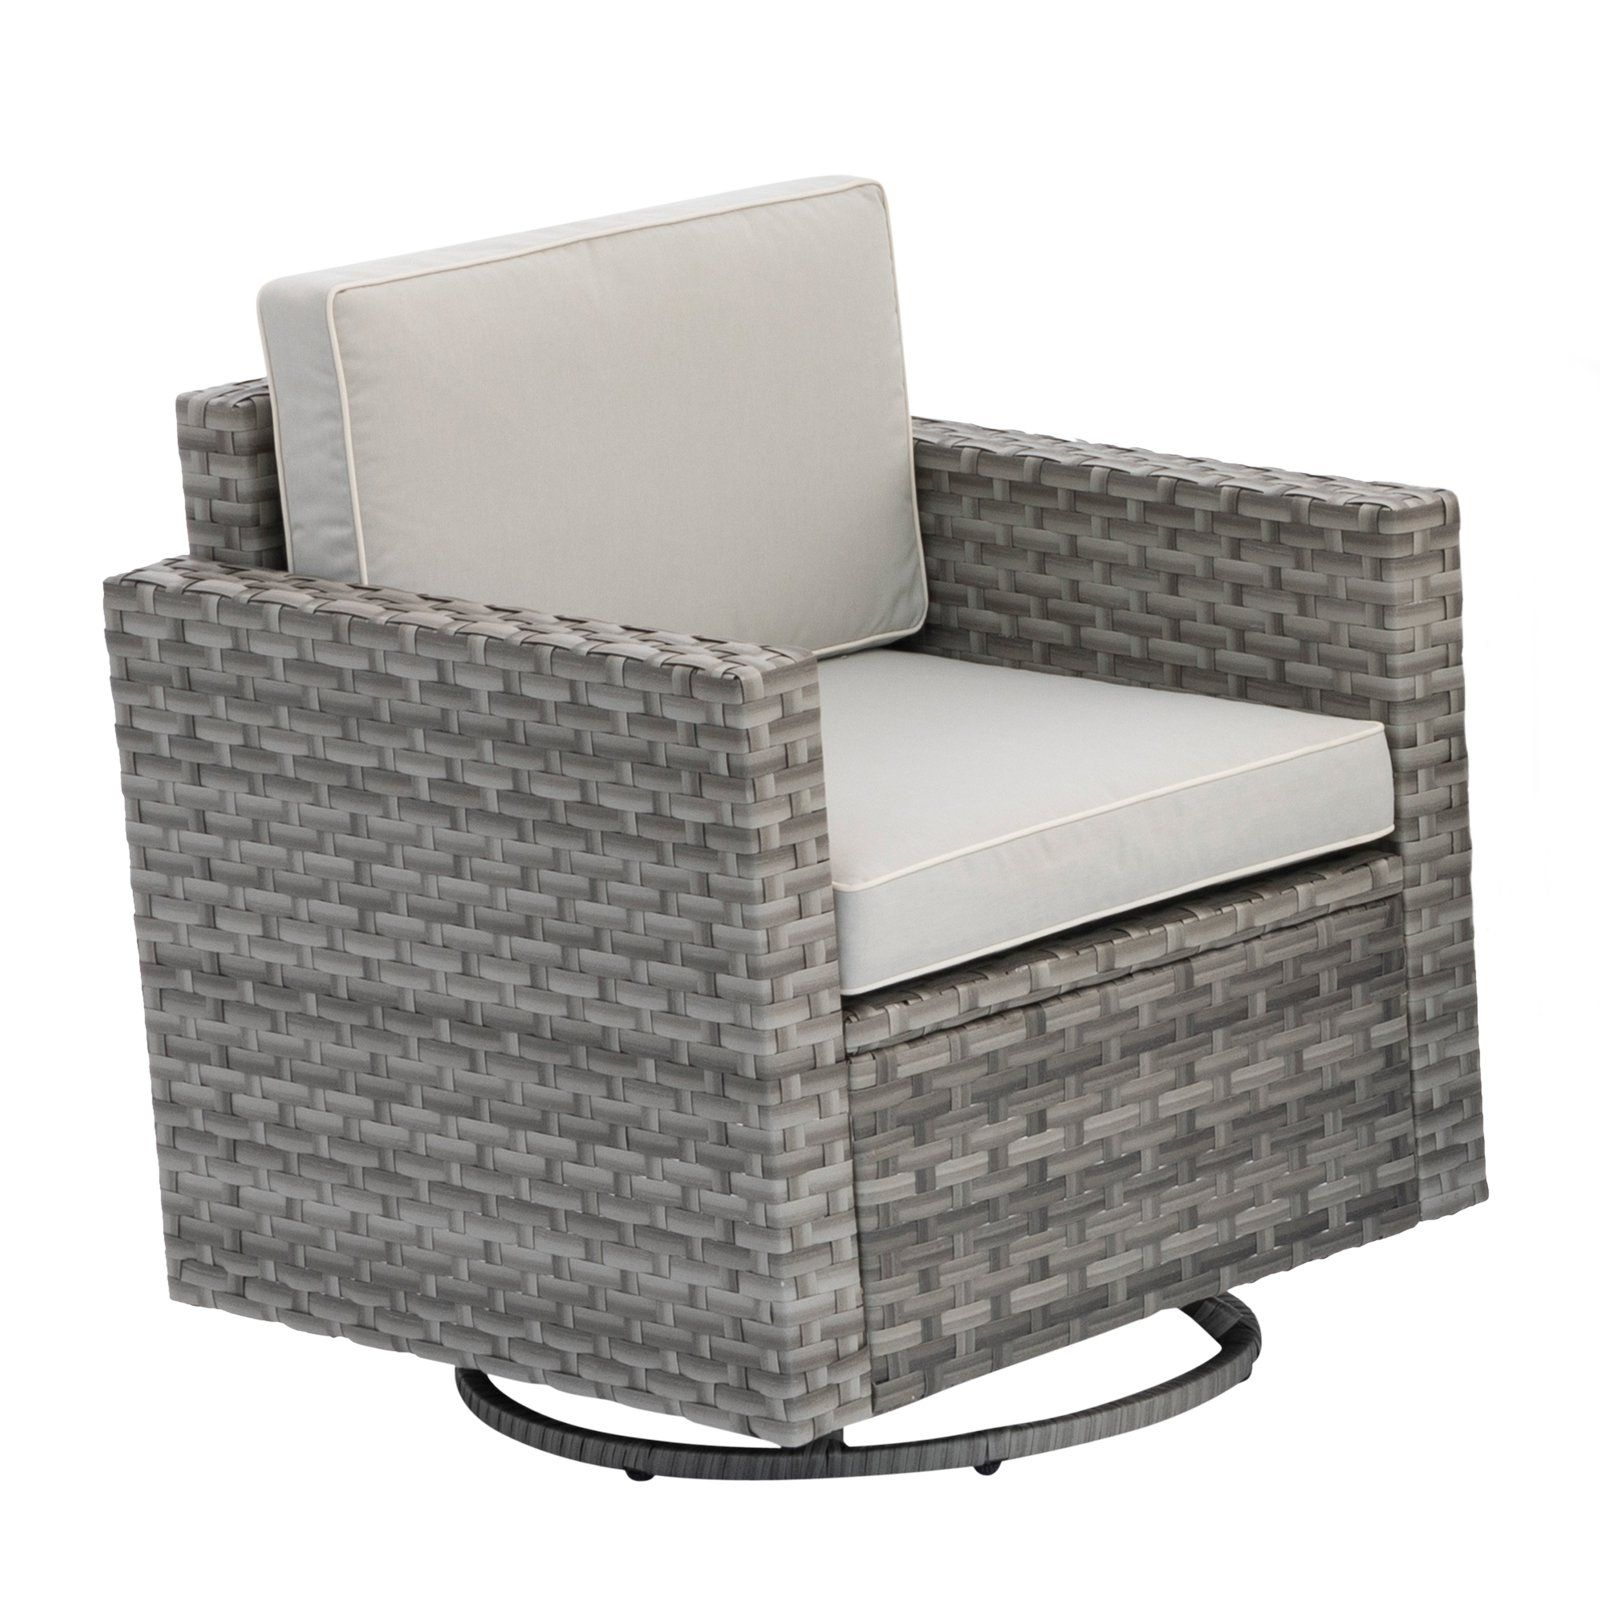 Super Coral Coast Berea Outdoor Wicker Swivel Chair With Cushions Cjindustries Chair Design For Home Cjindustriesco